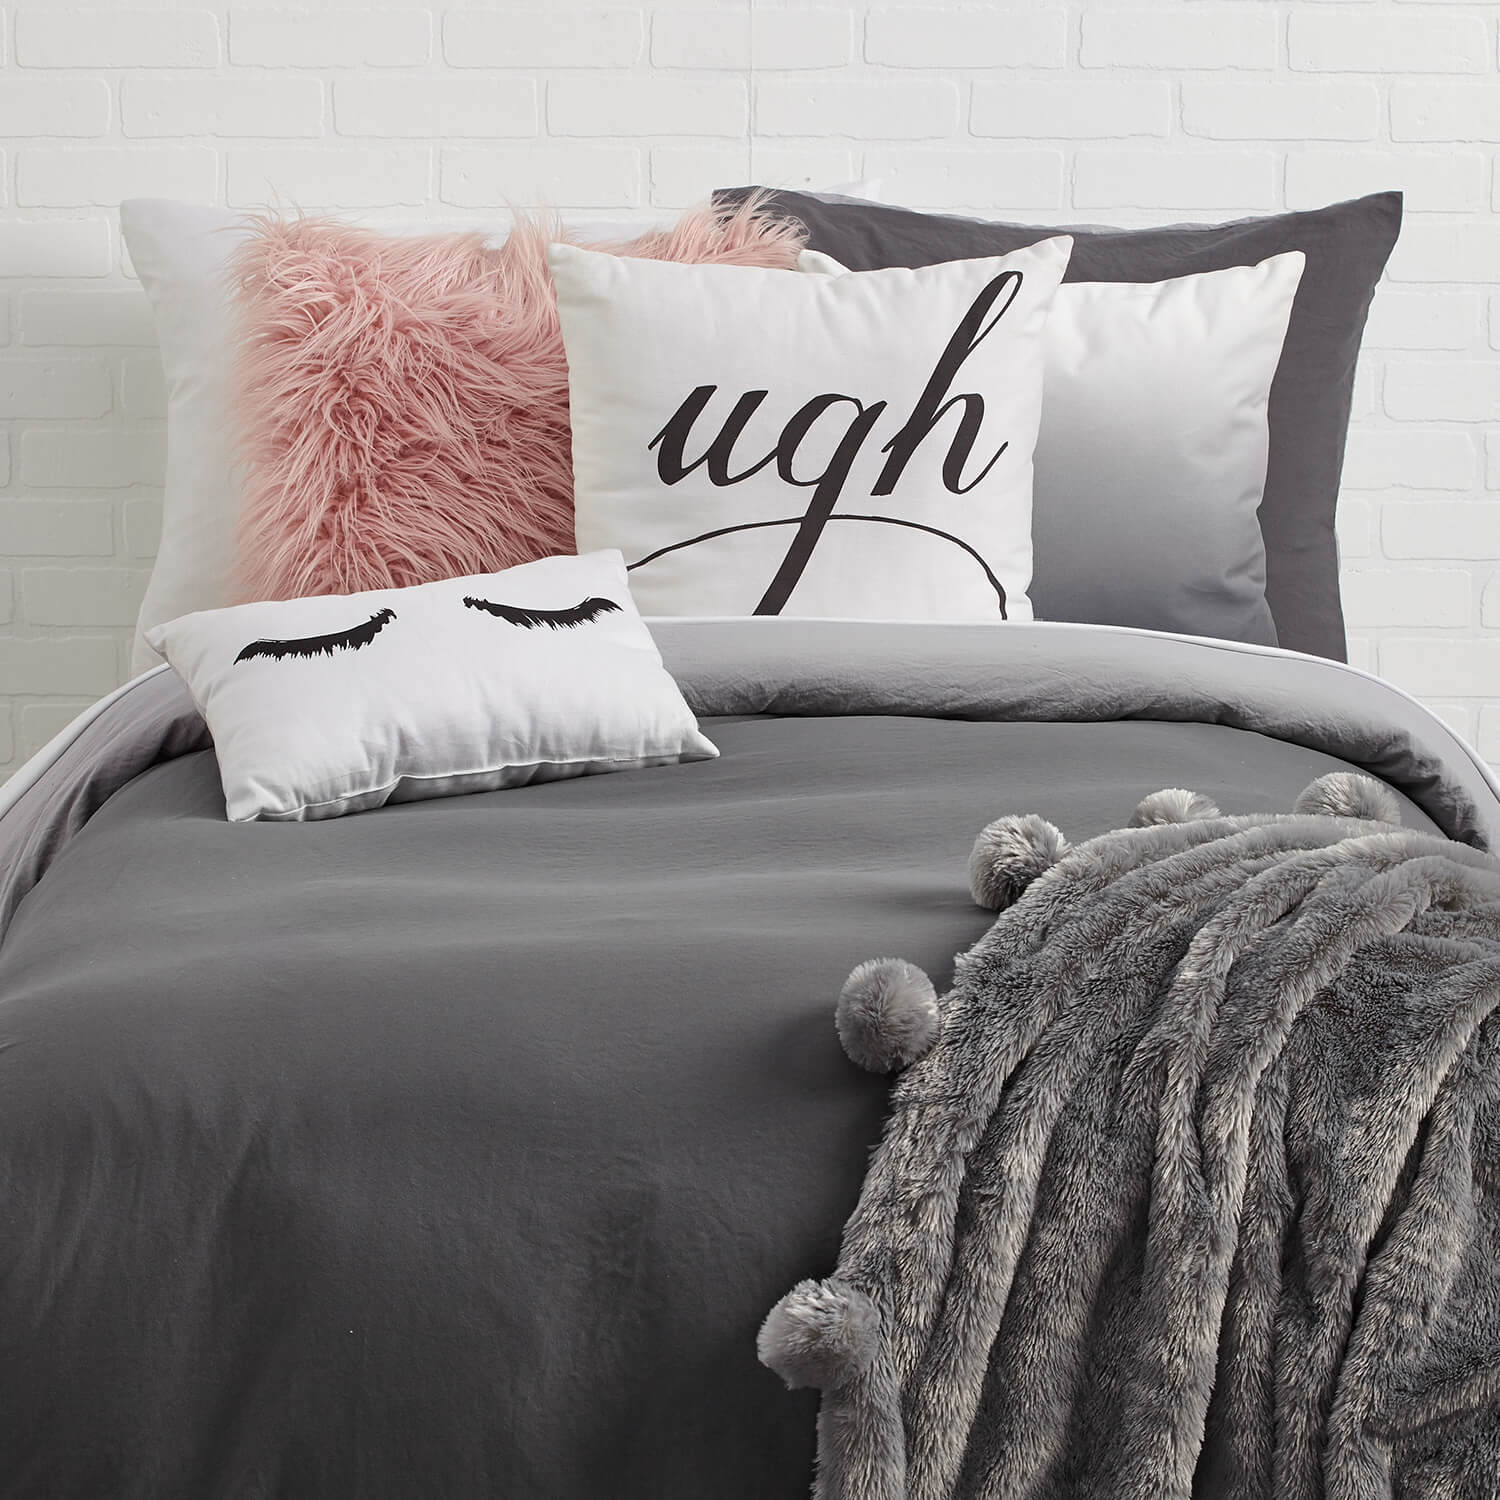 heather so comfy looks pin this queen comforter dusty sets home on set pinterest martin by gold rose